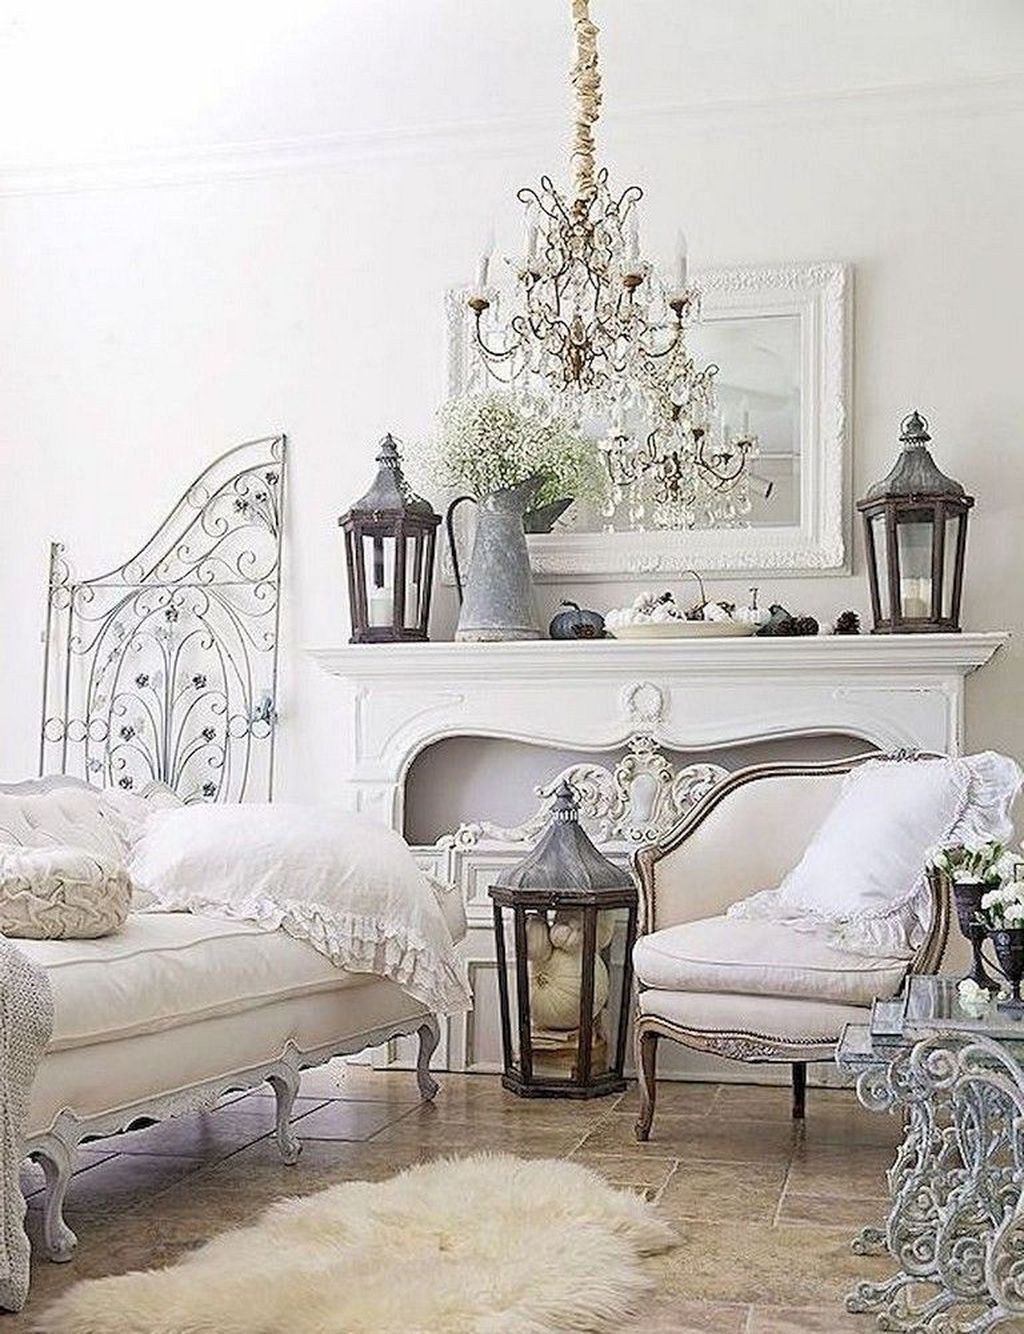 Fabulous French Country Living Room Design Ideas 01 Trendehouse French Country Decorating Living Room French Country Rug Country Living Room Design